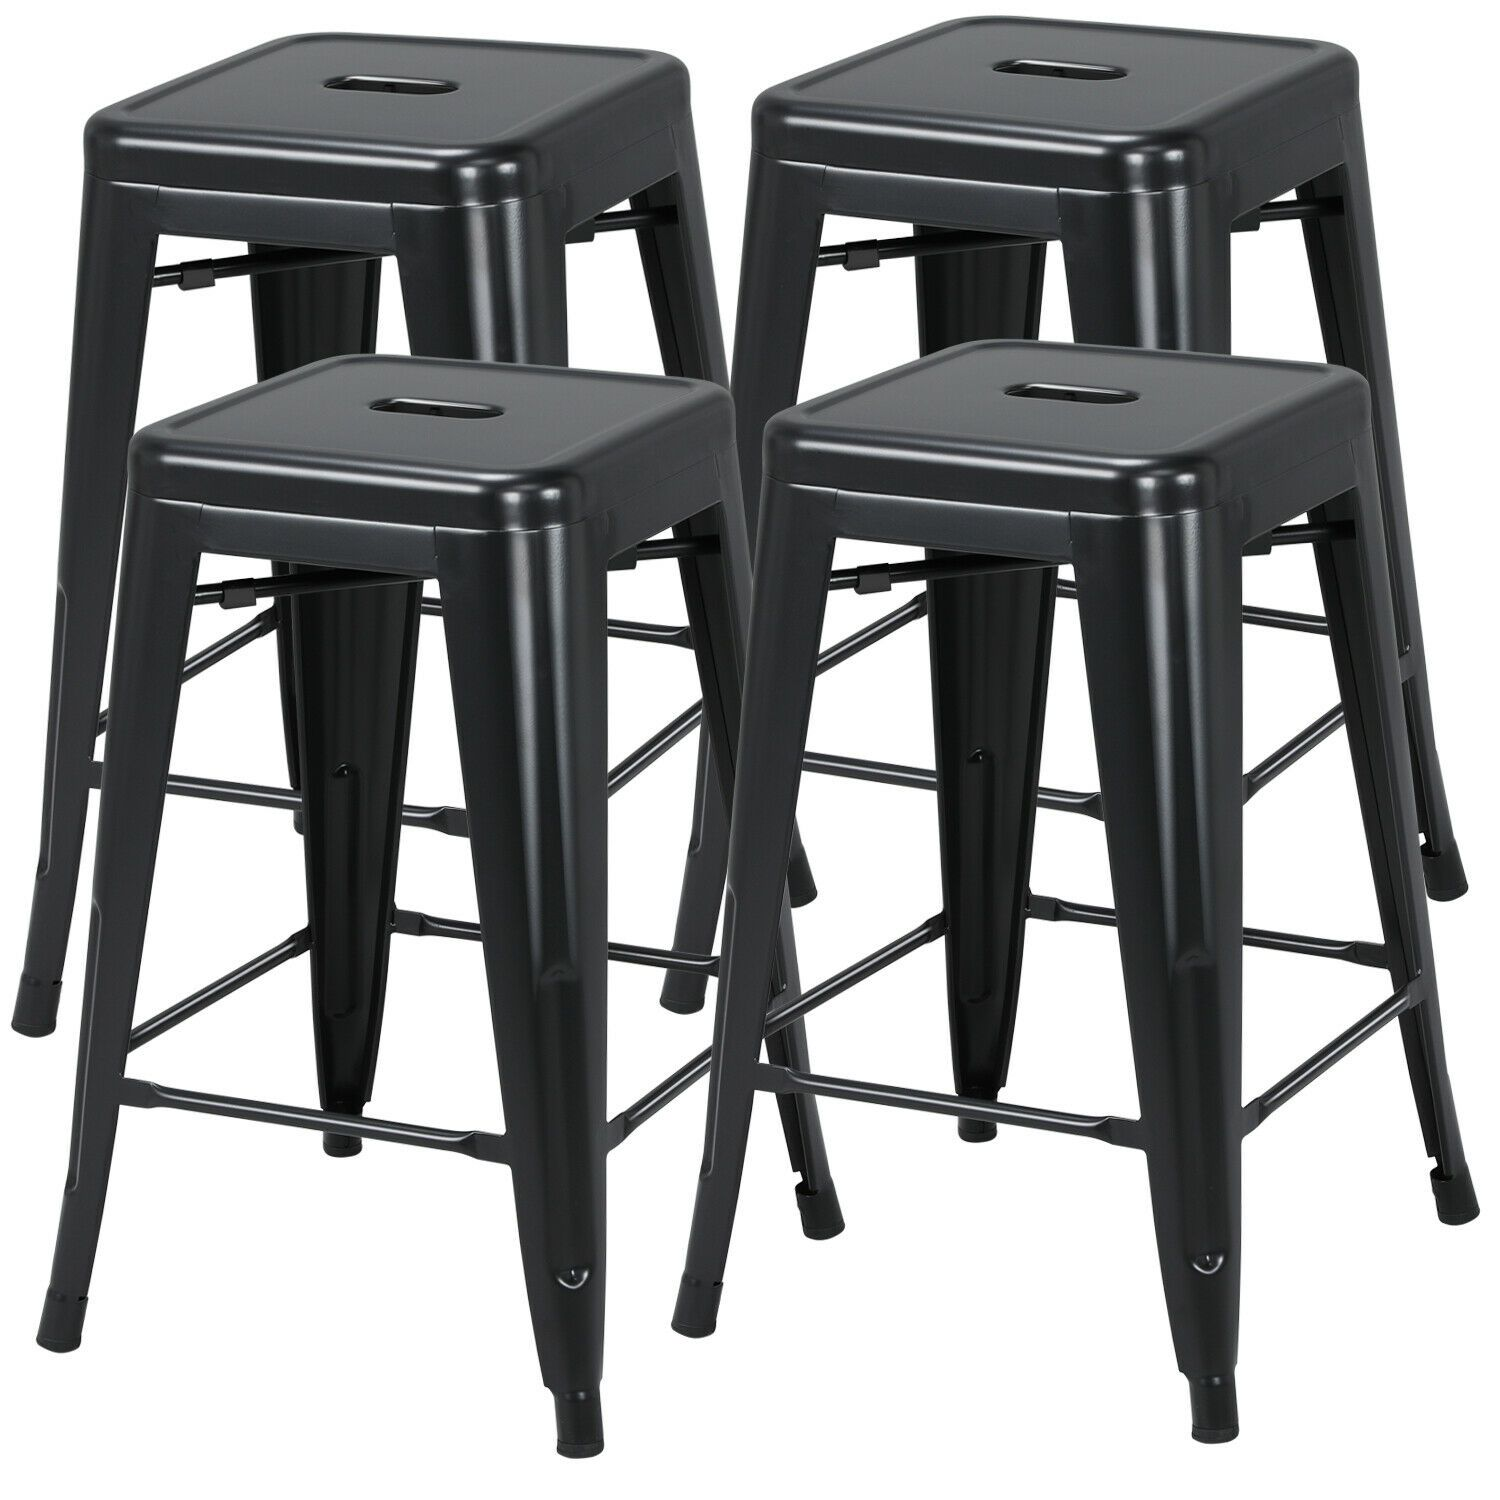 24 Metal Bar Stools Set Of 4 Backless Stackable Counter Height Kitchen Black Metal Bar Stools Bar Stools Modern Bar Stools